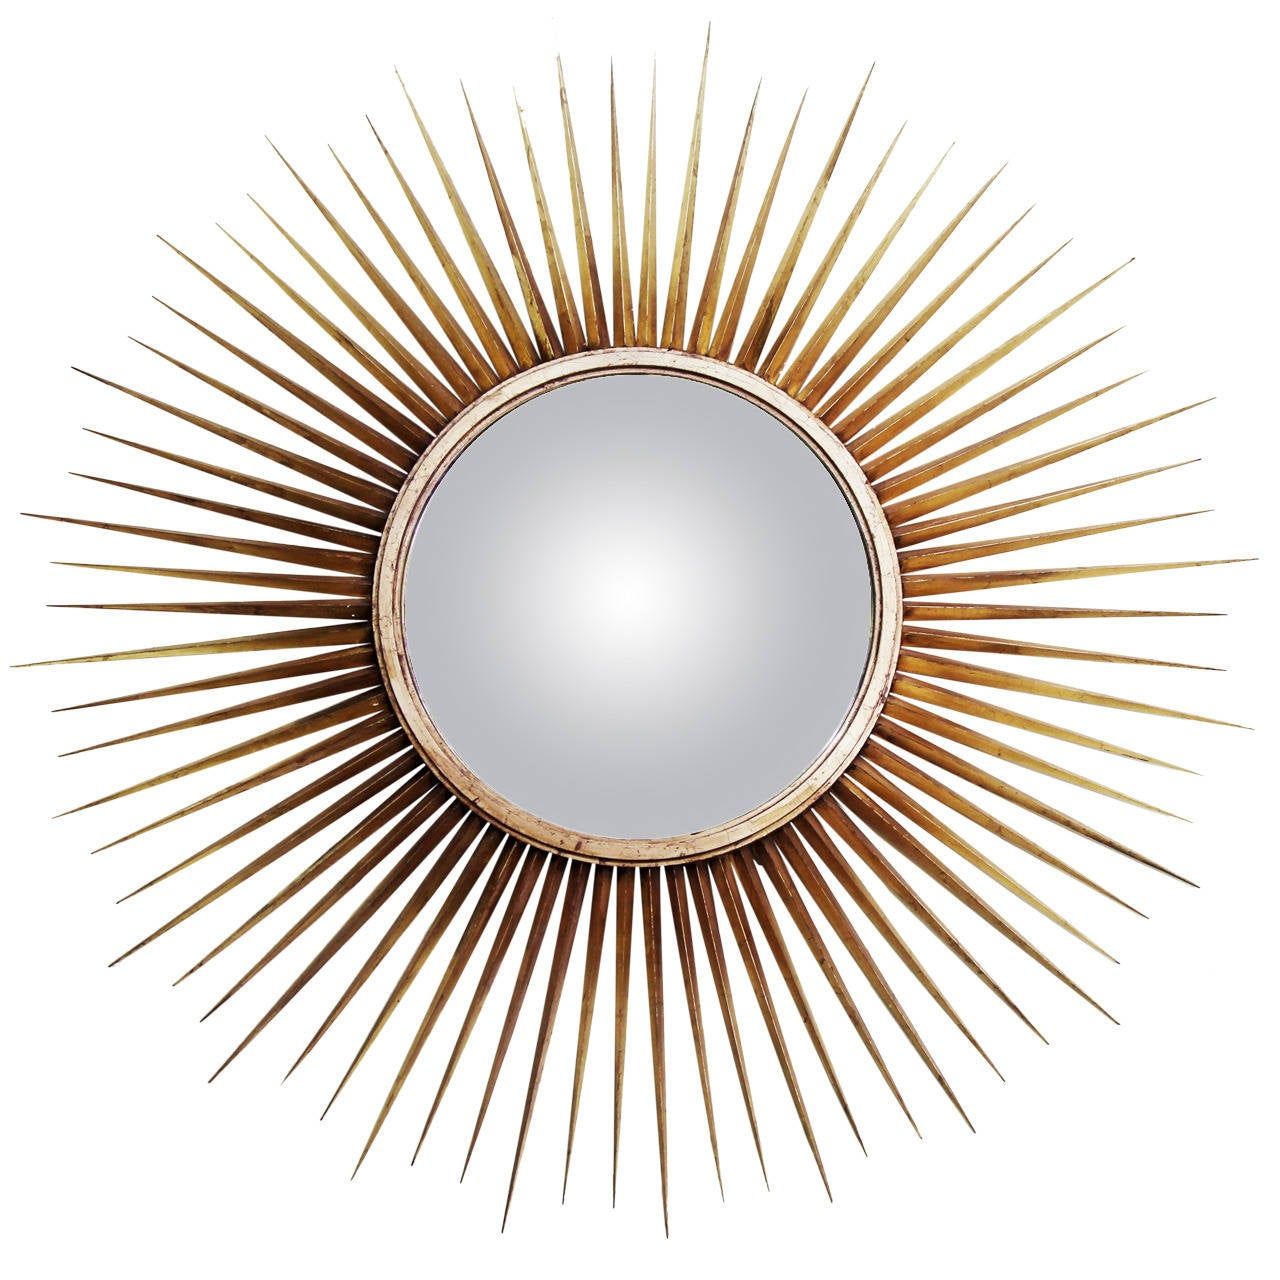 Sunburst Mirror By Mark Scharillo For Albert Hadley For